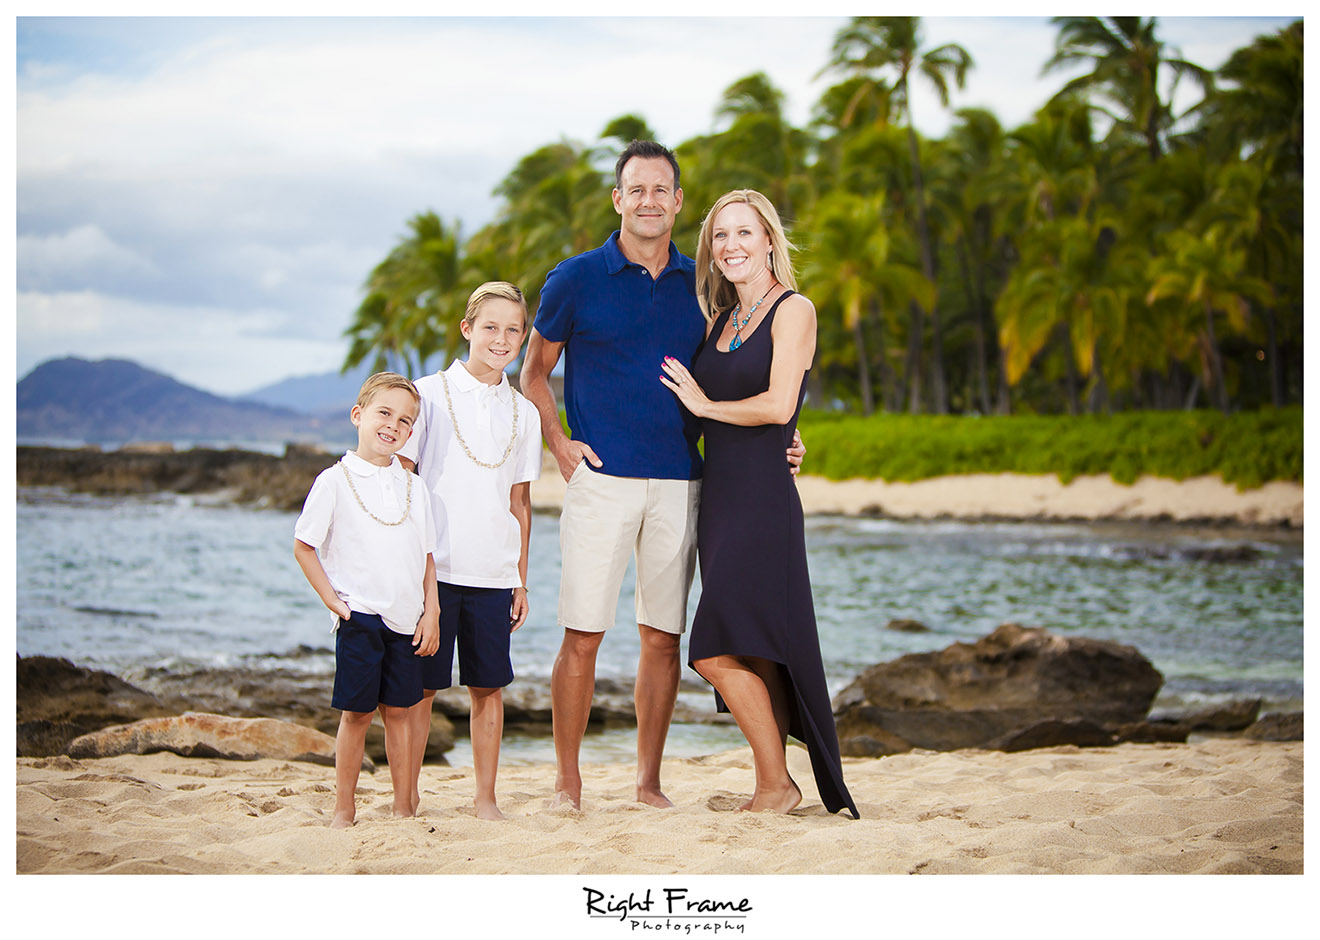 001_Oahu Family Photography